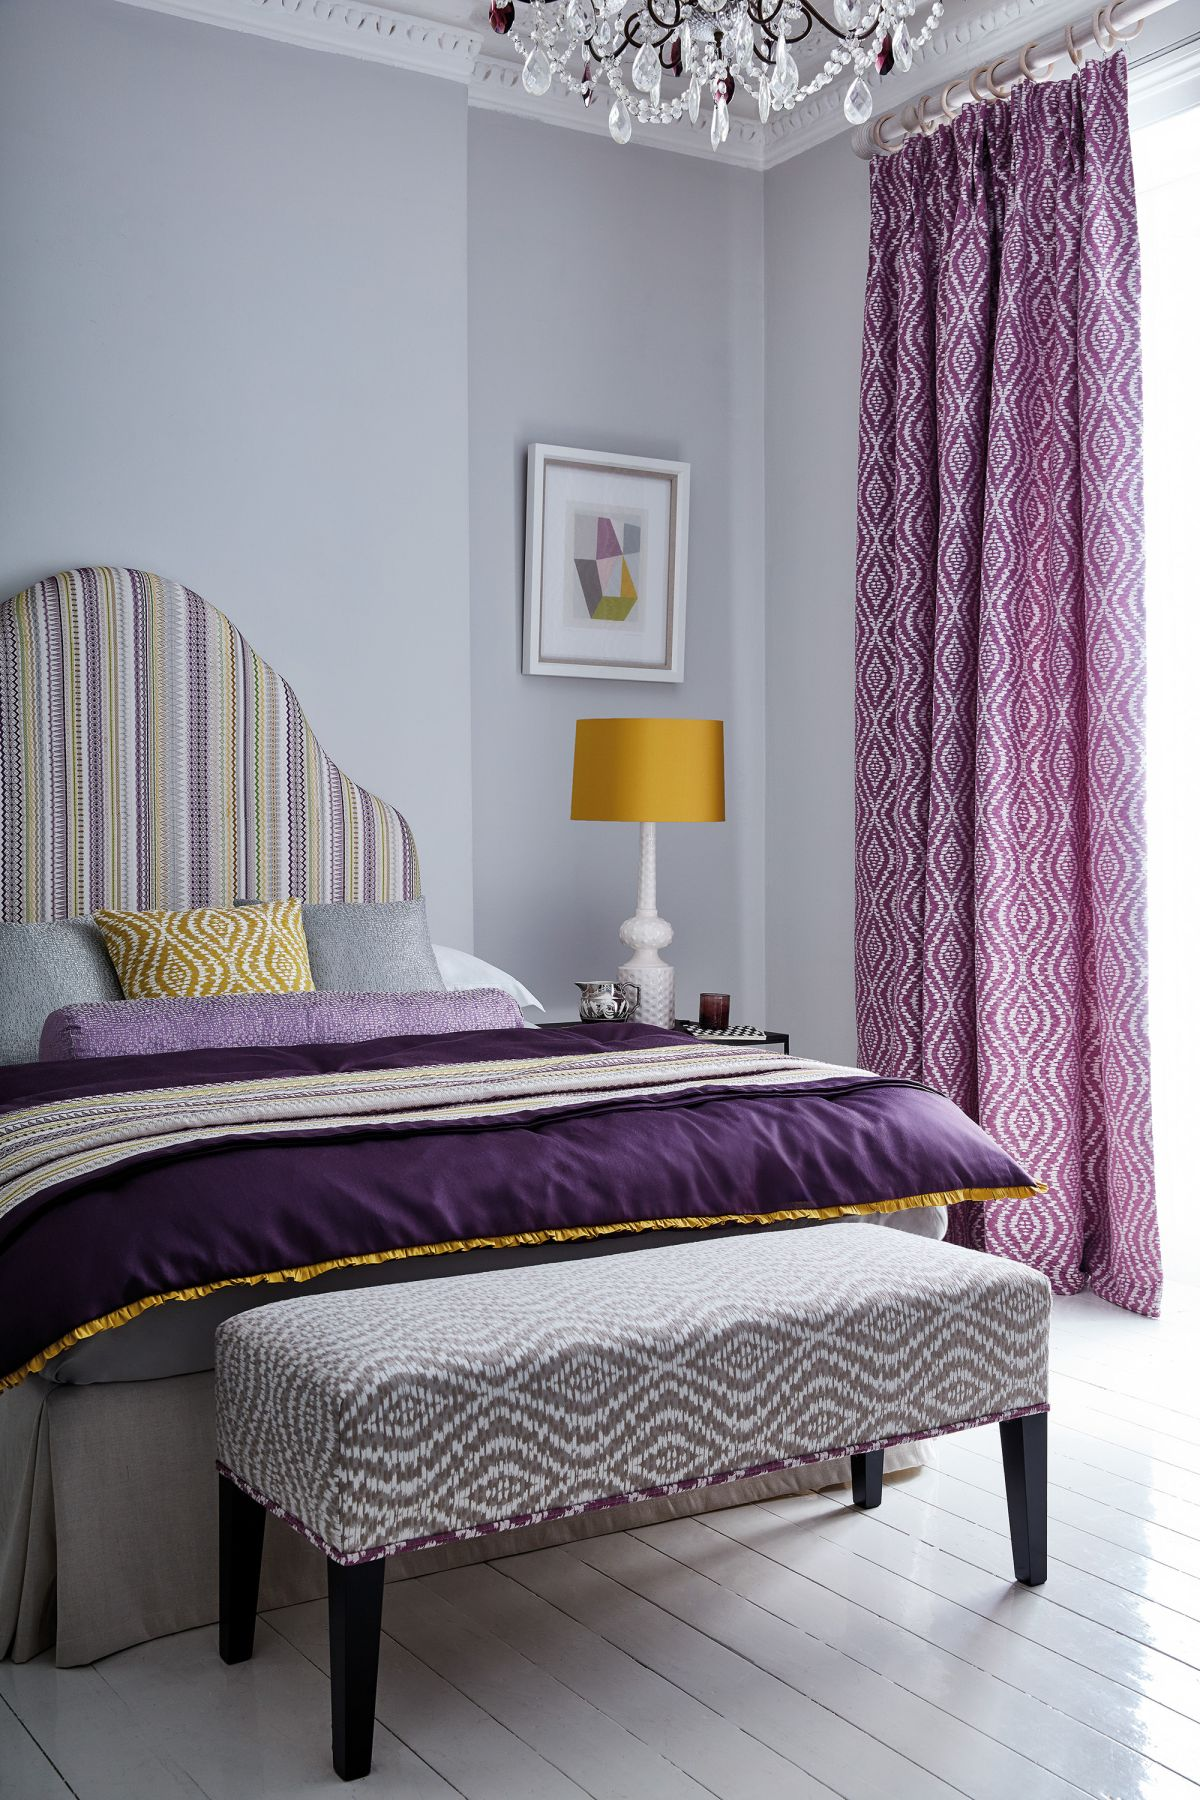 Bedroom curtain ideas: 16 curtain designs for beautiful ...